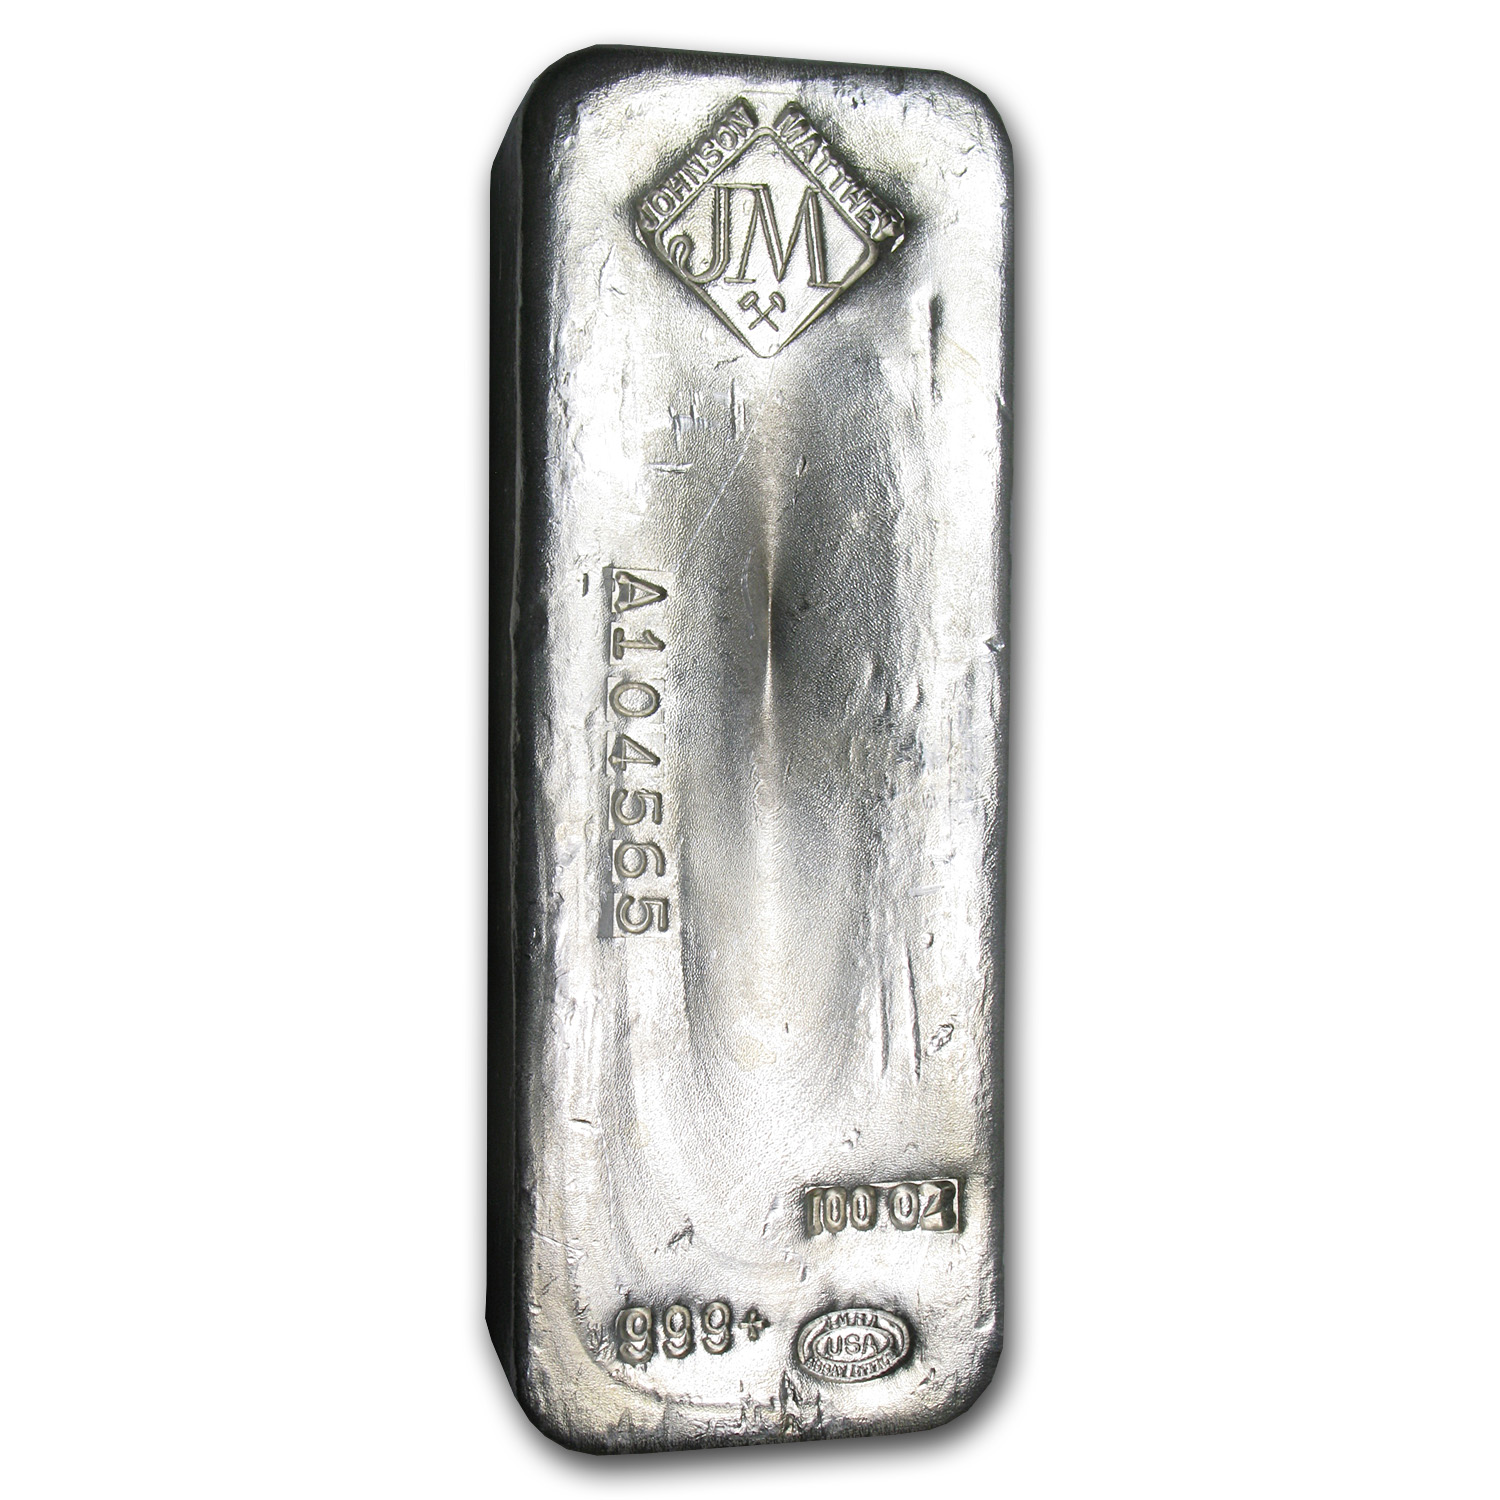 100 oz Silver Bars - Johnson Matthey (Serial #/USA)